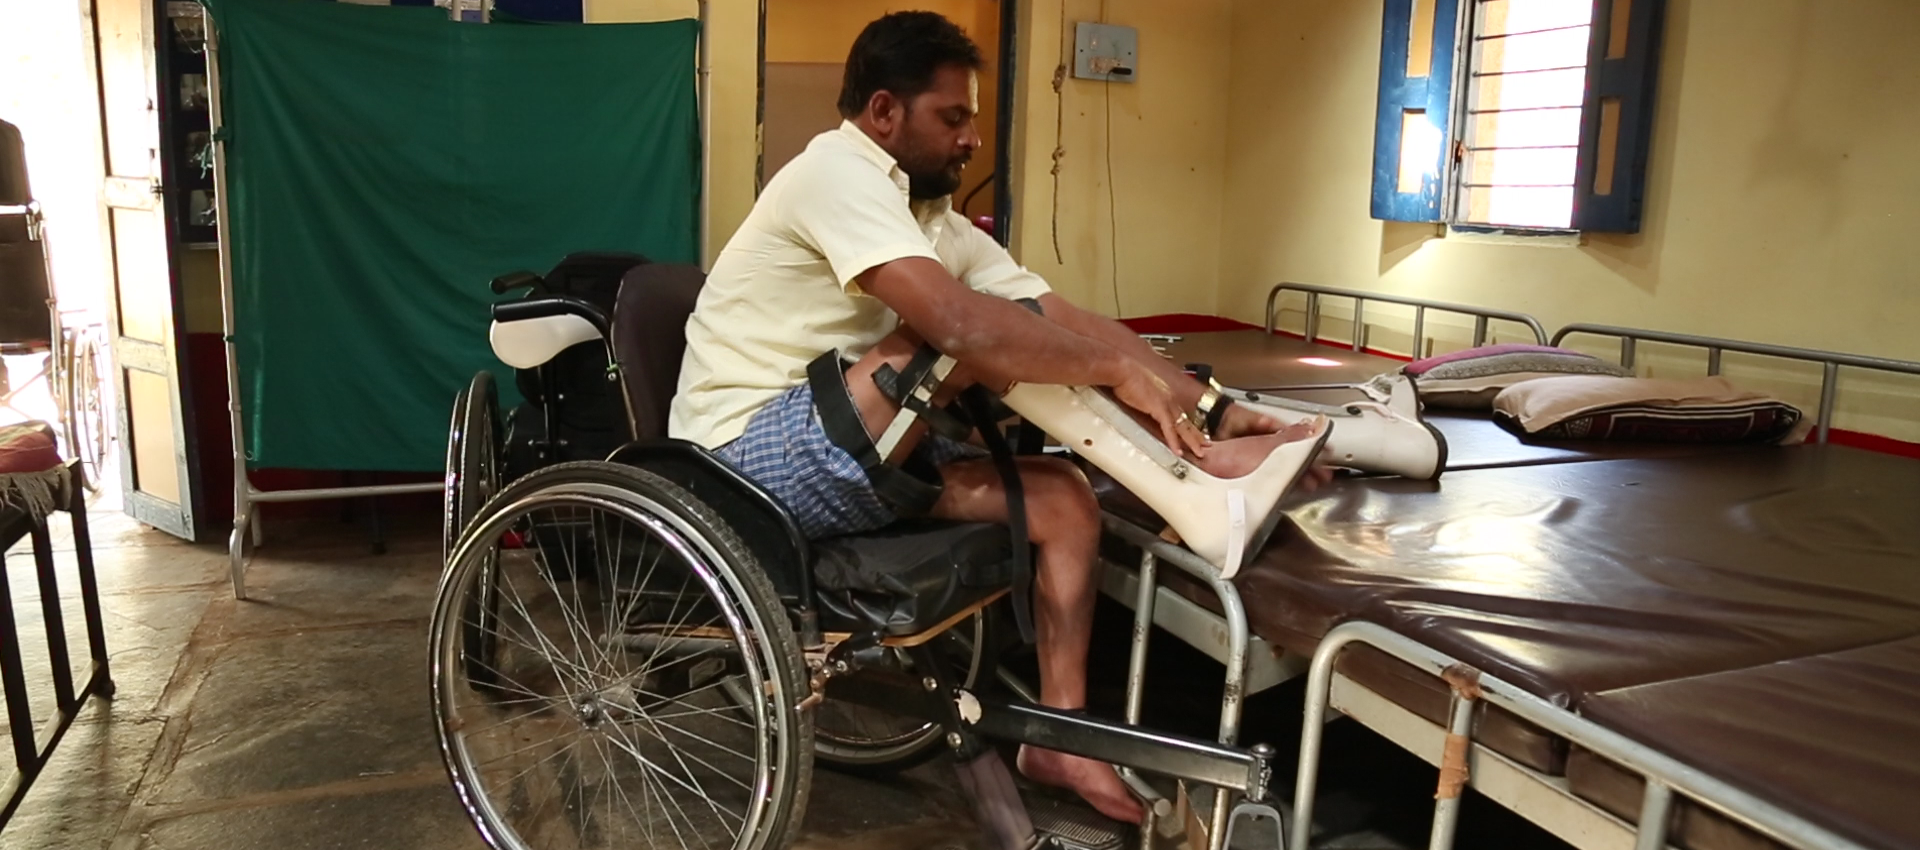 Person with Spinal Cord Injury fitting his Assistive Devices and Mobility Aids | APD India